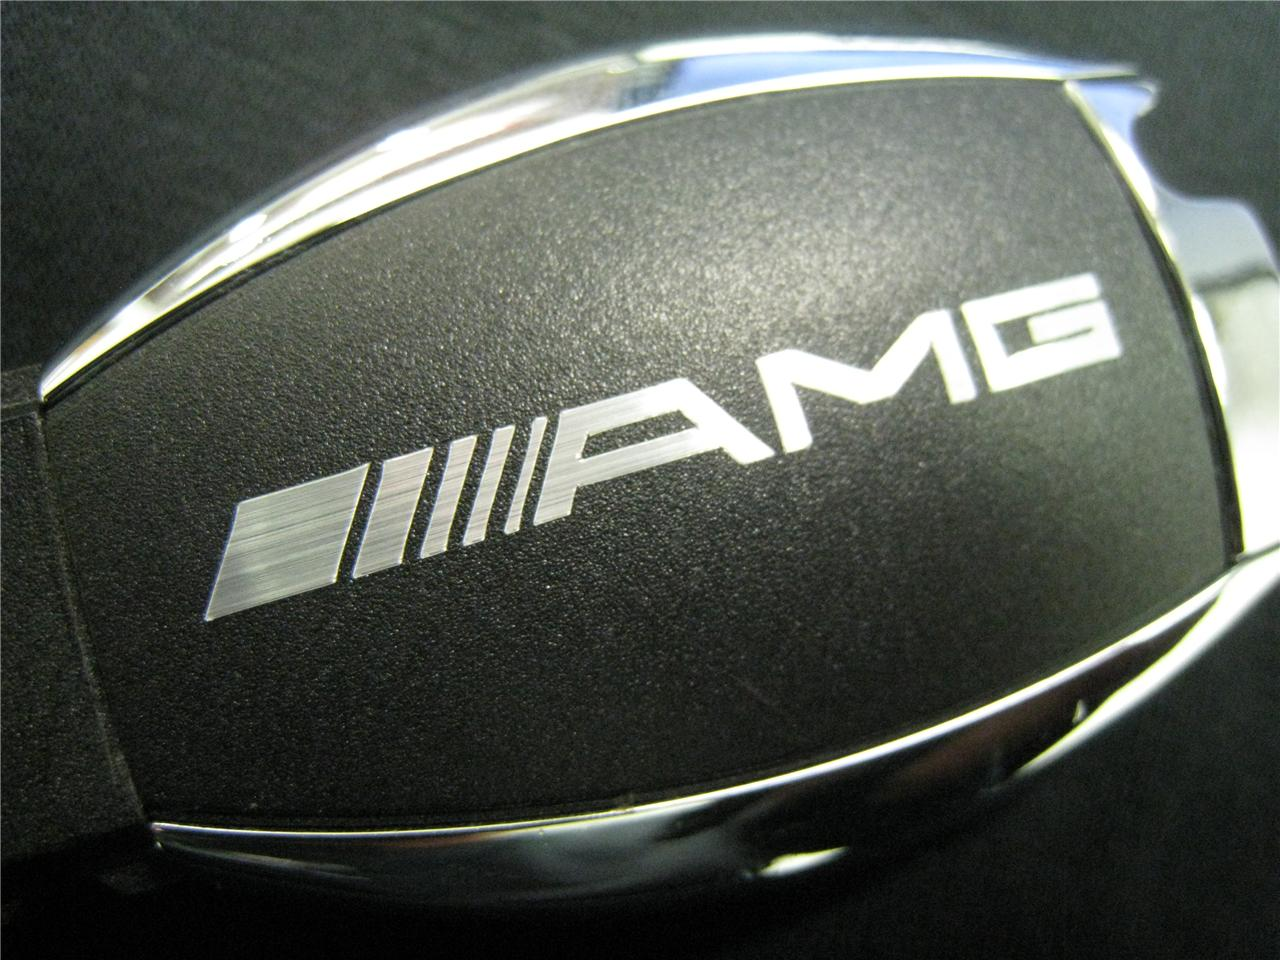 Buy 2x amg decal sticker mercedes benz car key for A mercedes benz product sticker